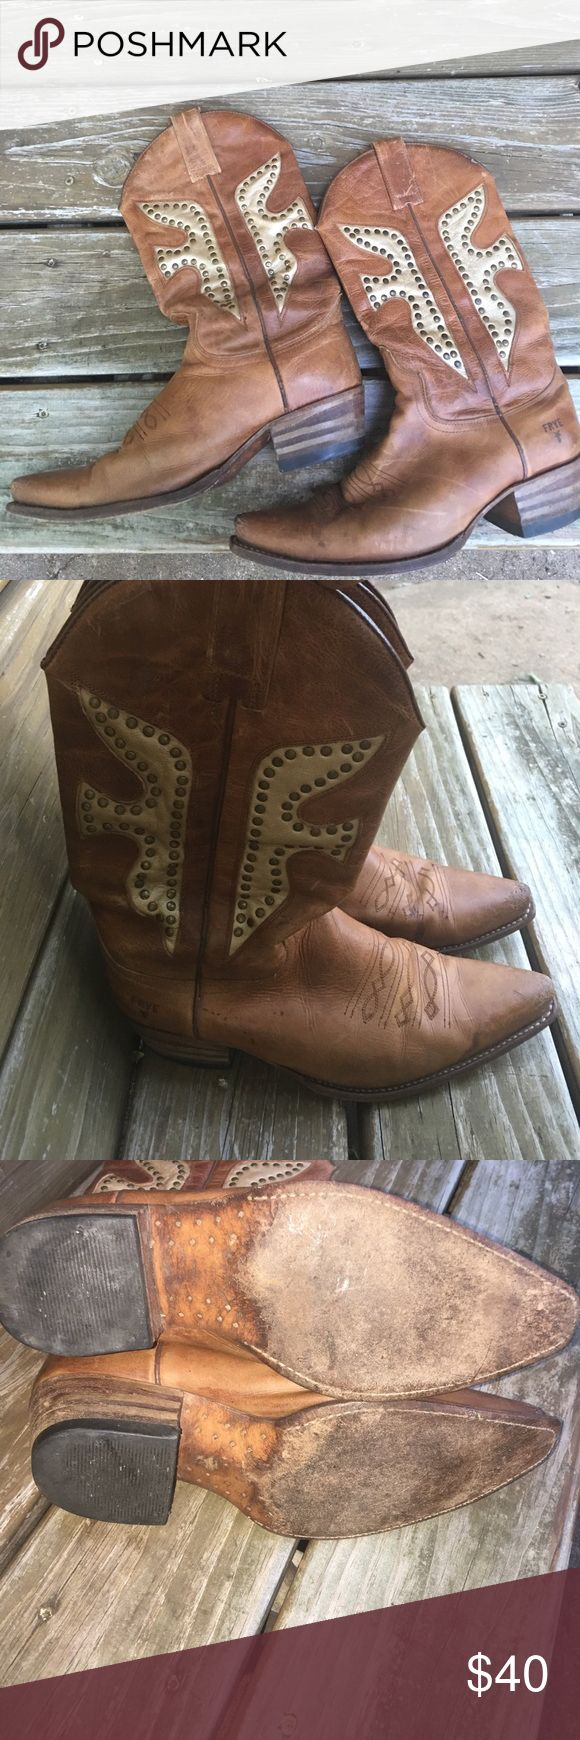 FRYE Cowboy Boots Used boots, but still a lot of life left in them. The toes have some scuff marks(see pictures) and there are a few other spots on them. I don't have any products available to clean and polish them. But, I think they could look close to new with some love. Frye Shoes Heeled Boots